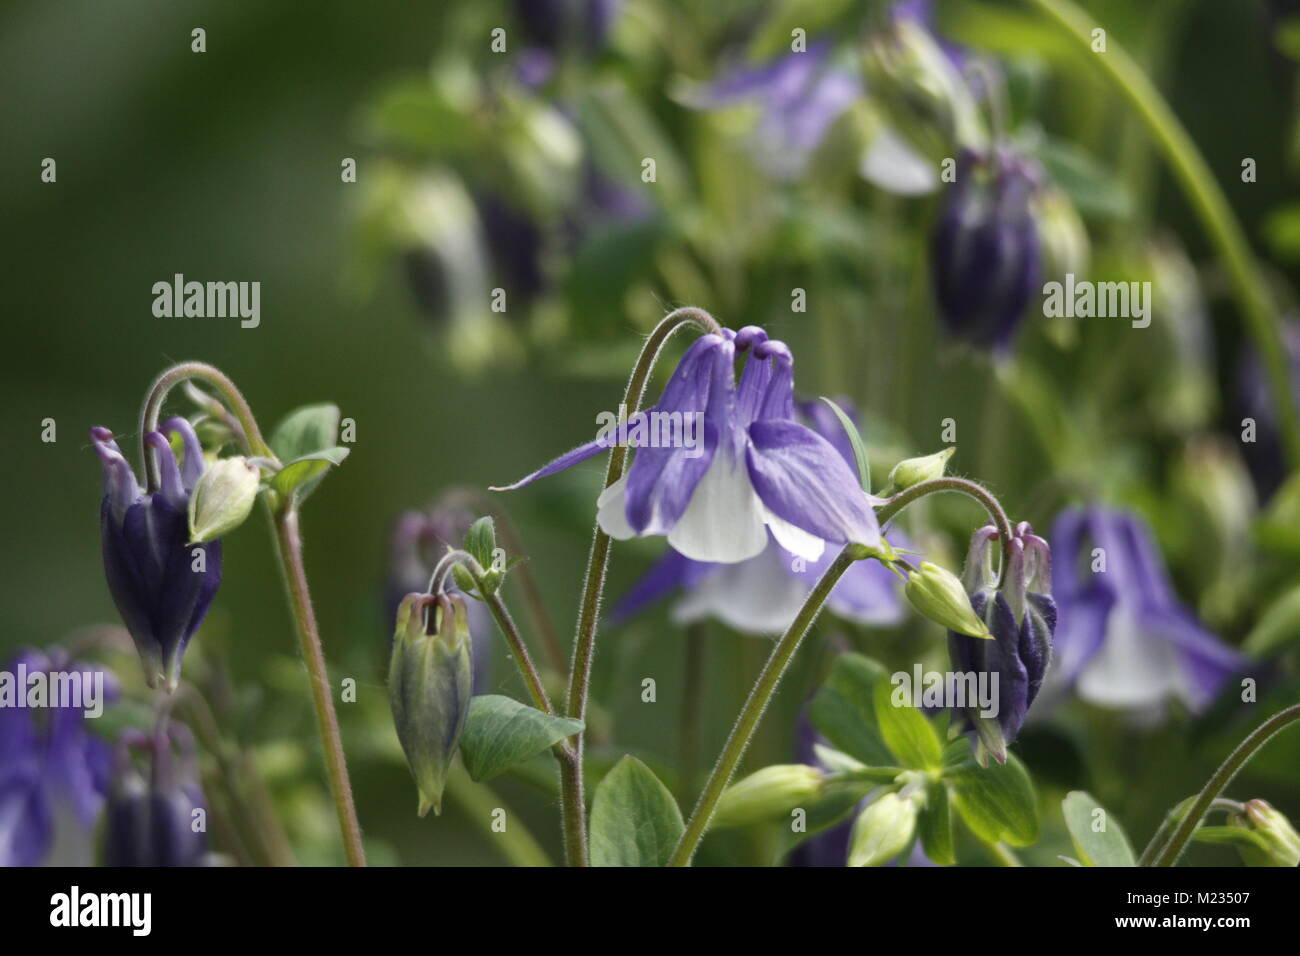 Columbine flowers spring flowers beautiful colors stock photo columbine flowers spring flowers beautiful colors izmirmasajfo